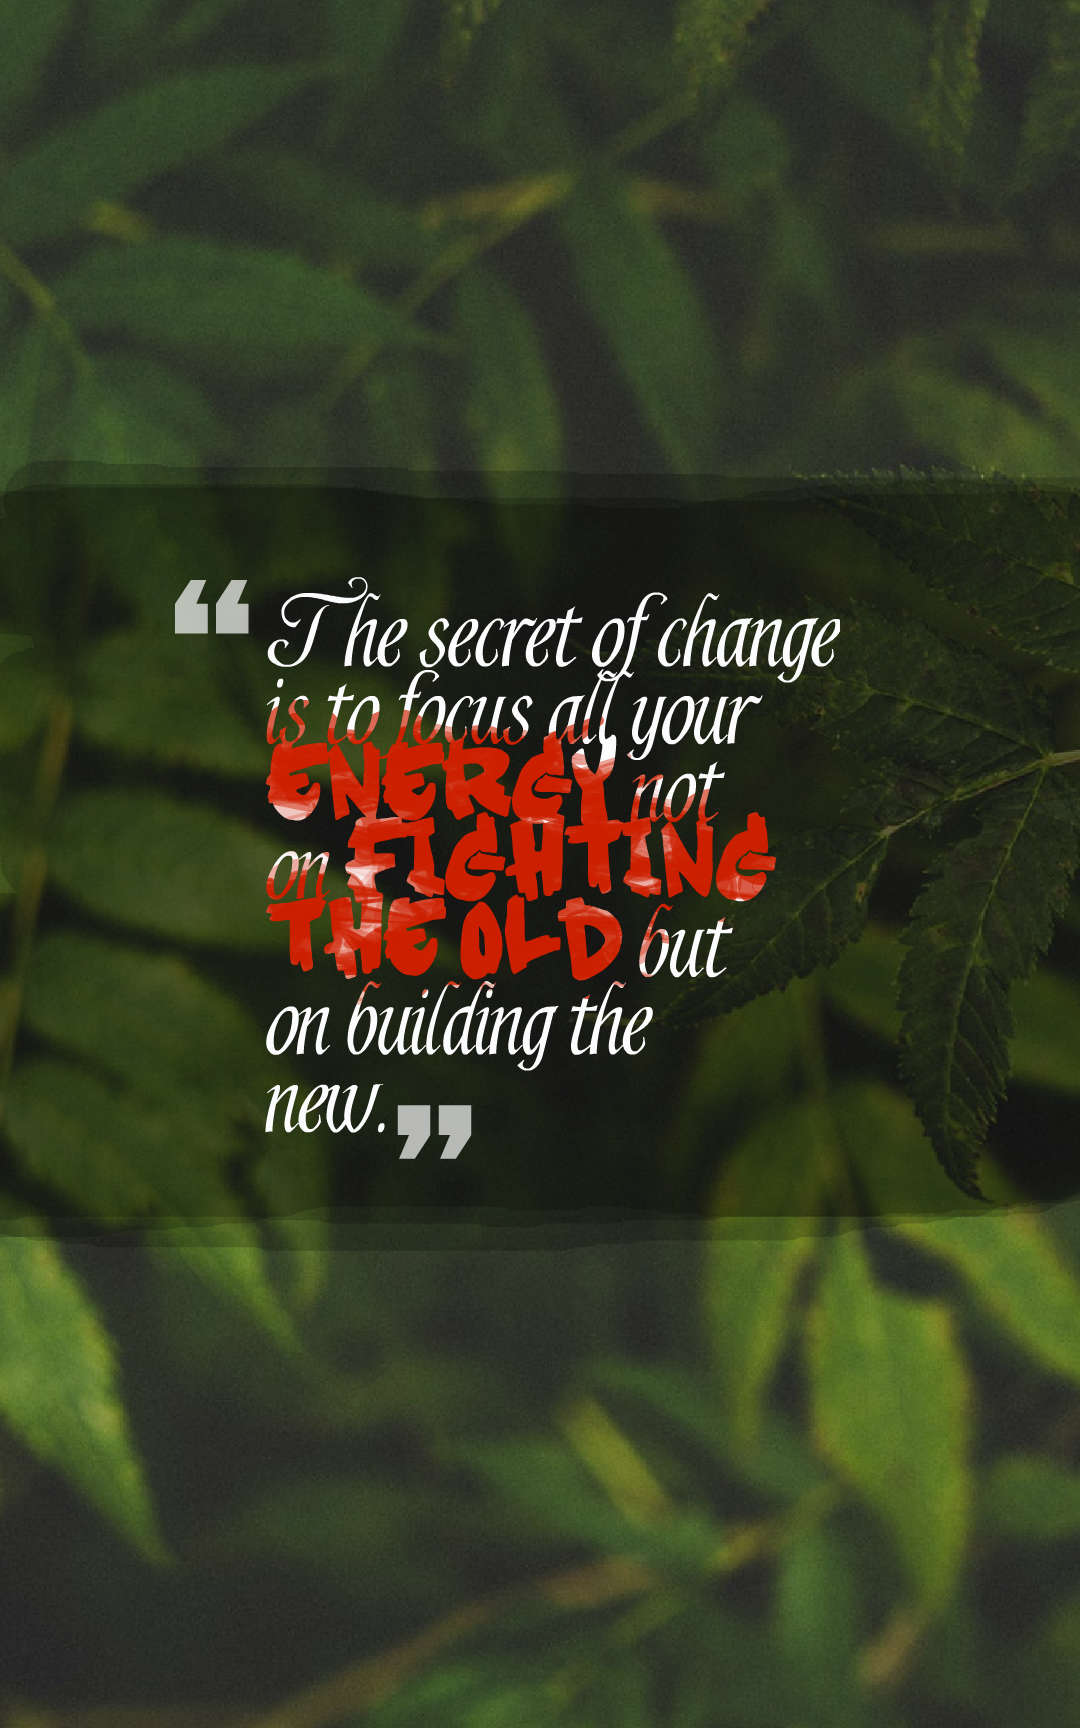 Quotes image of The secret of change is to focus all your energy not on fighting the old but on building the new.